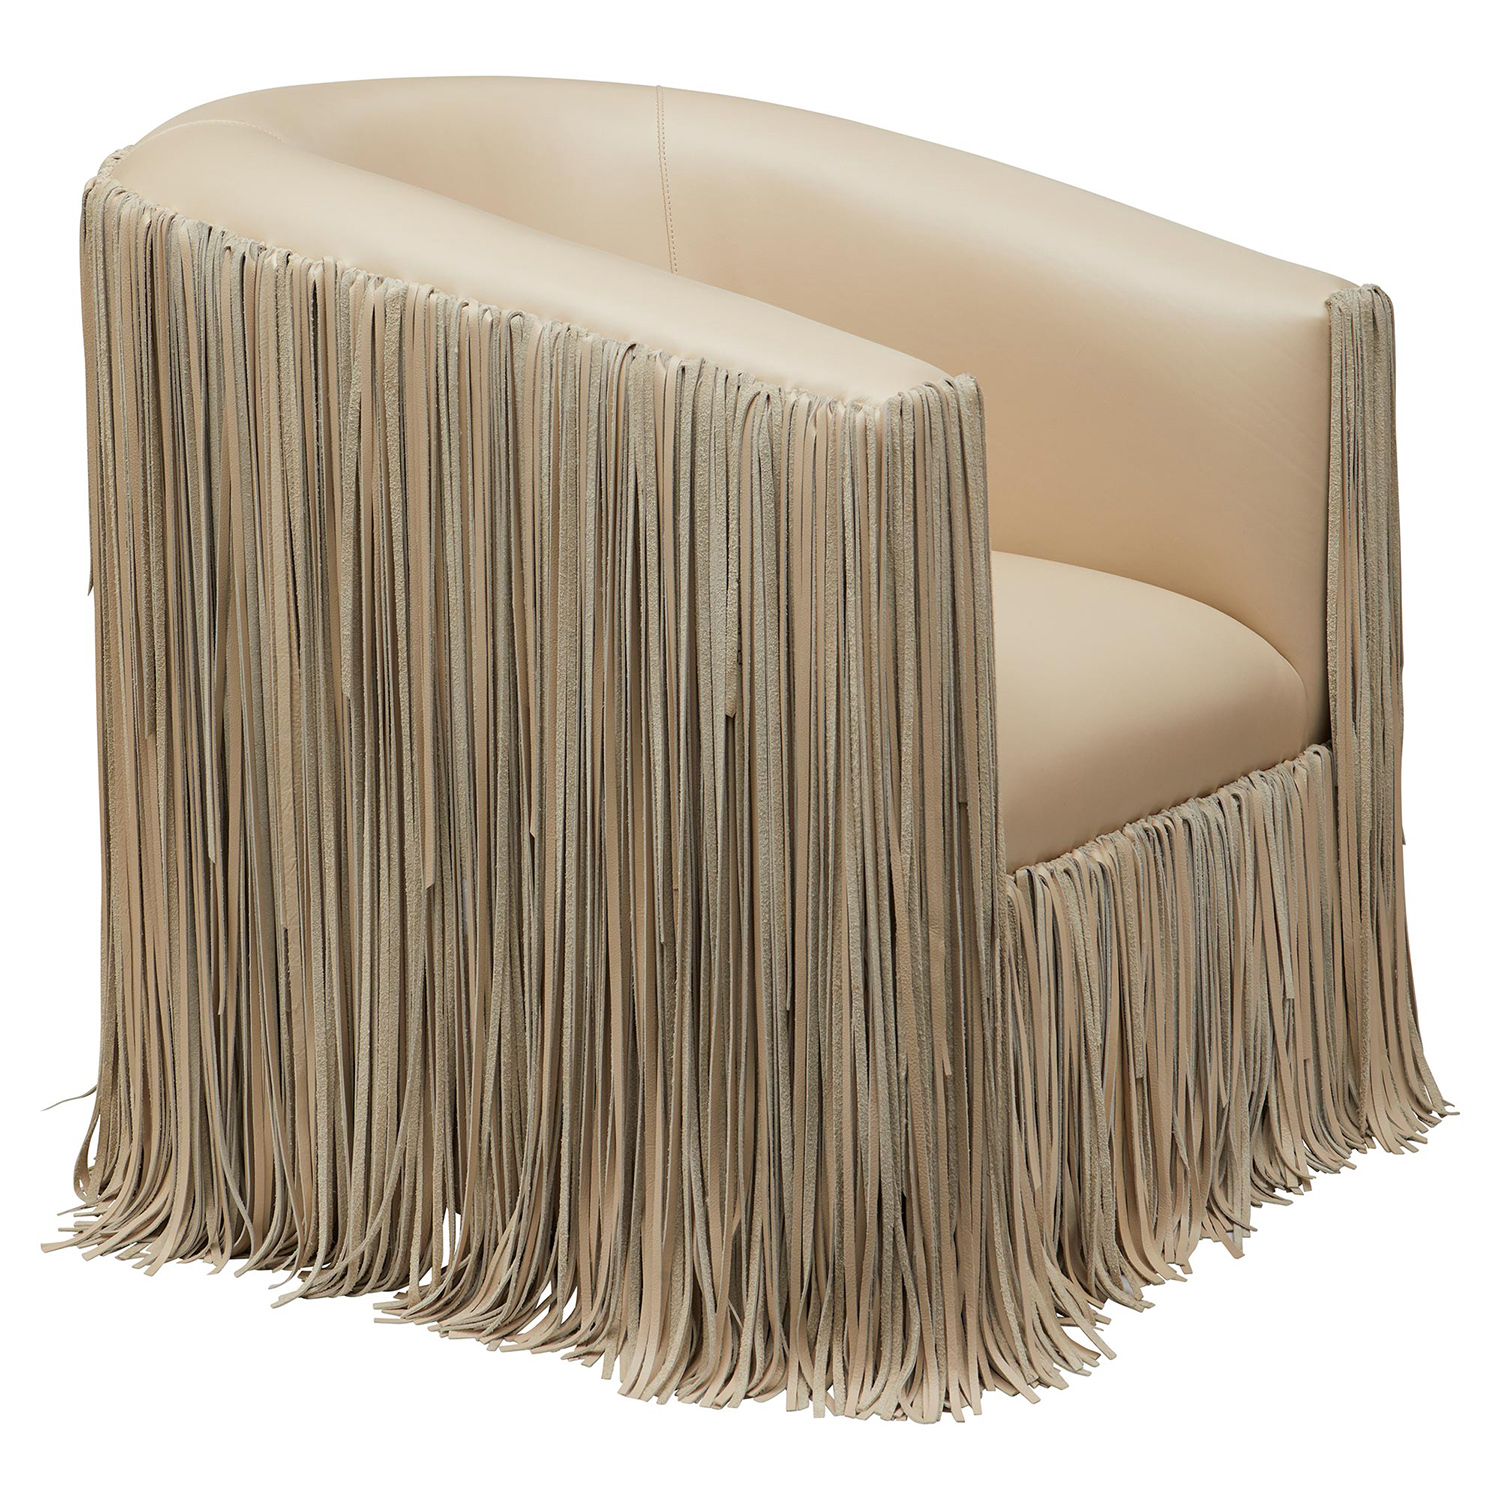 Shaggy Leather Swivel Chair - Cream-Stone Leather